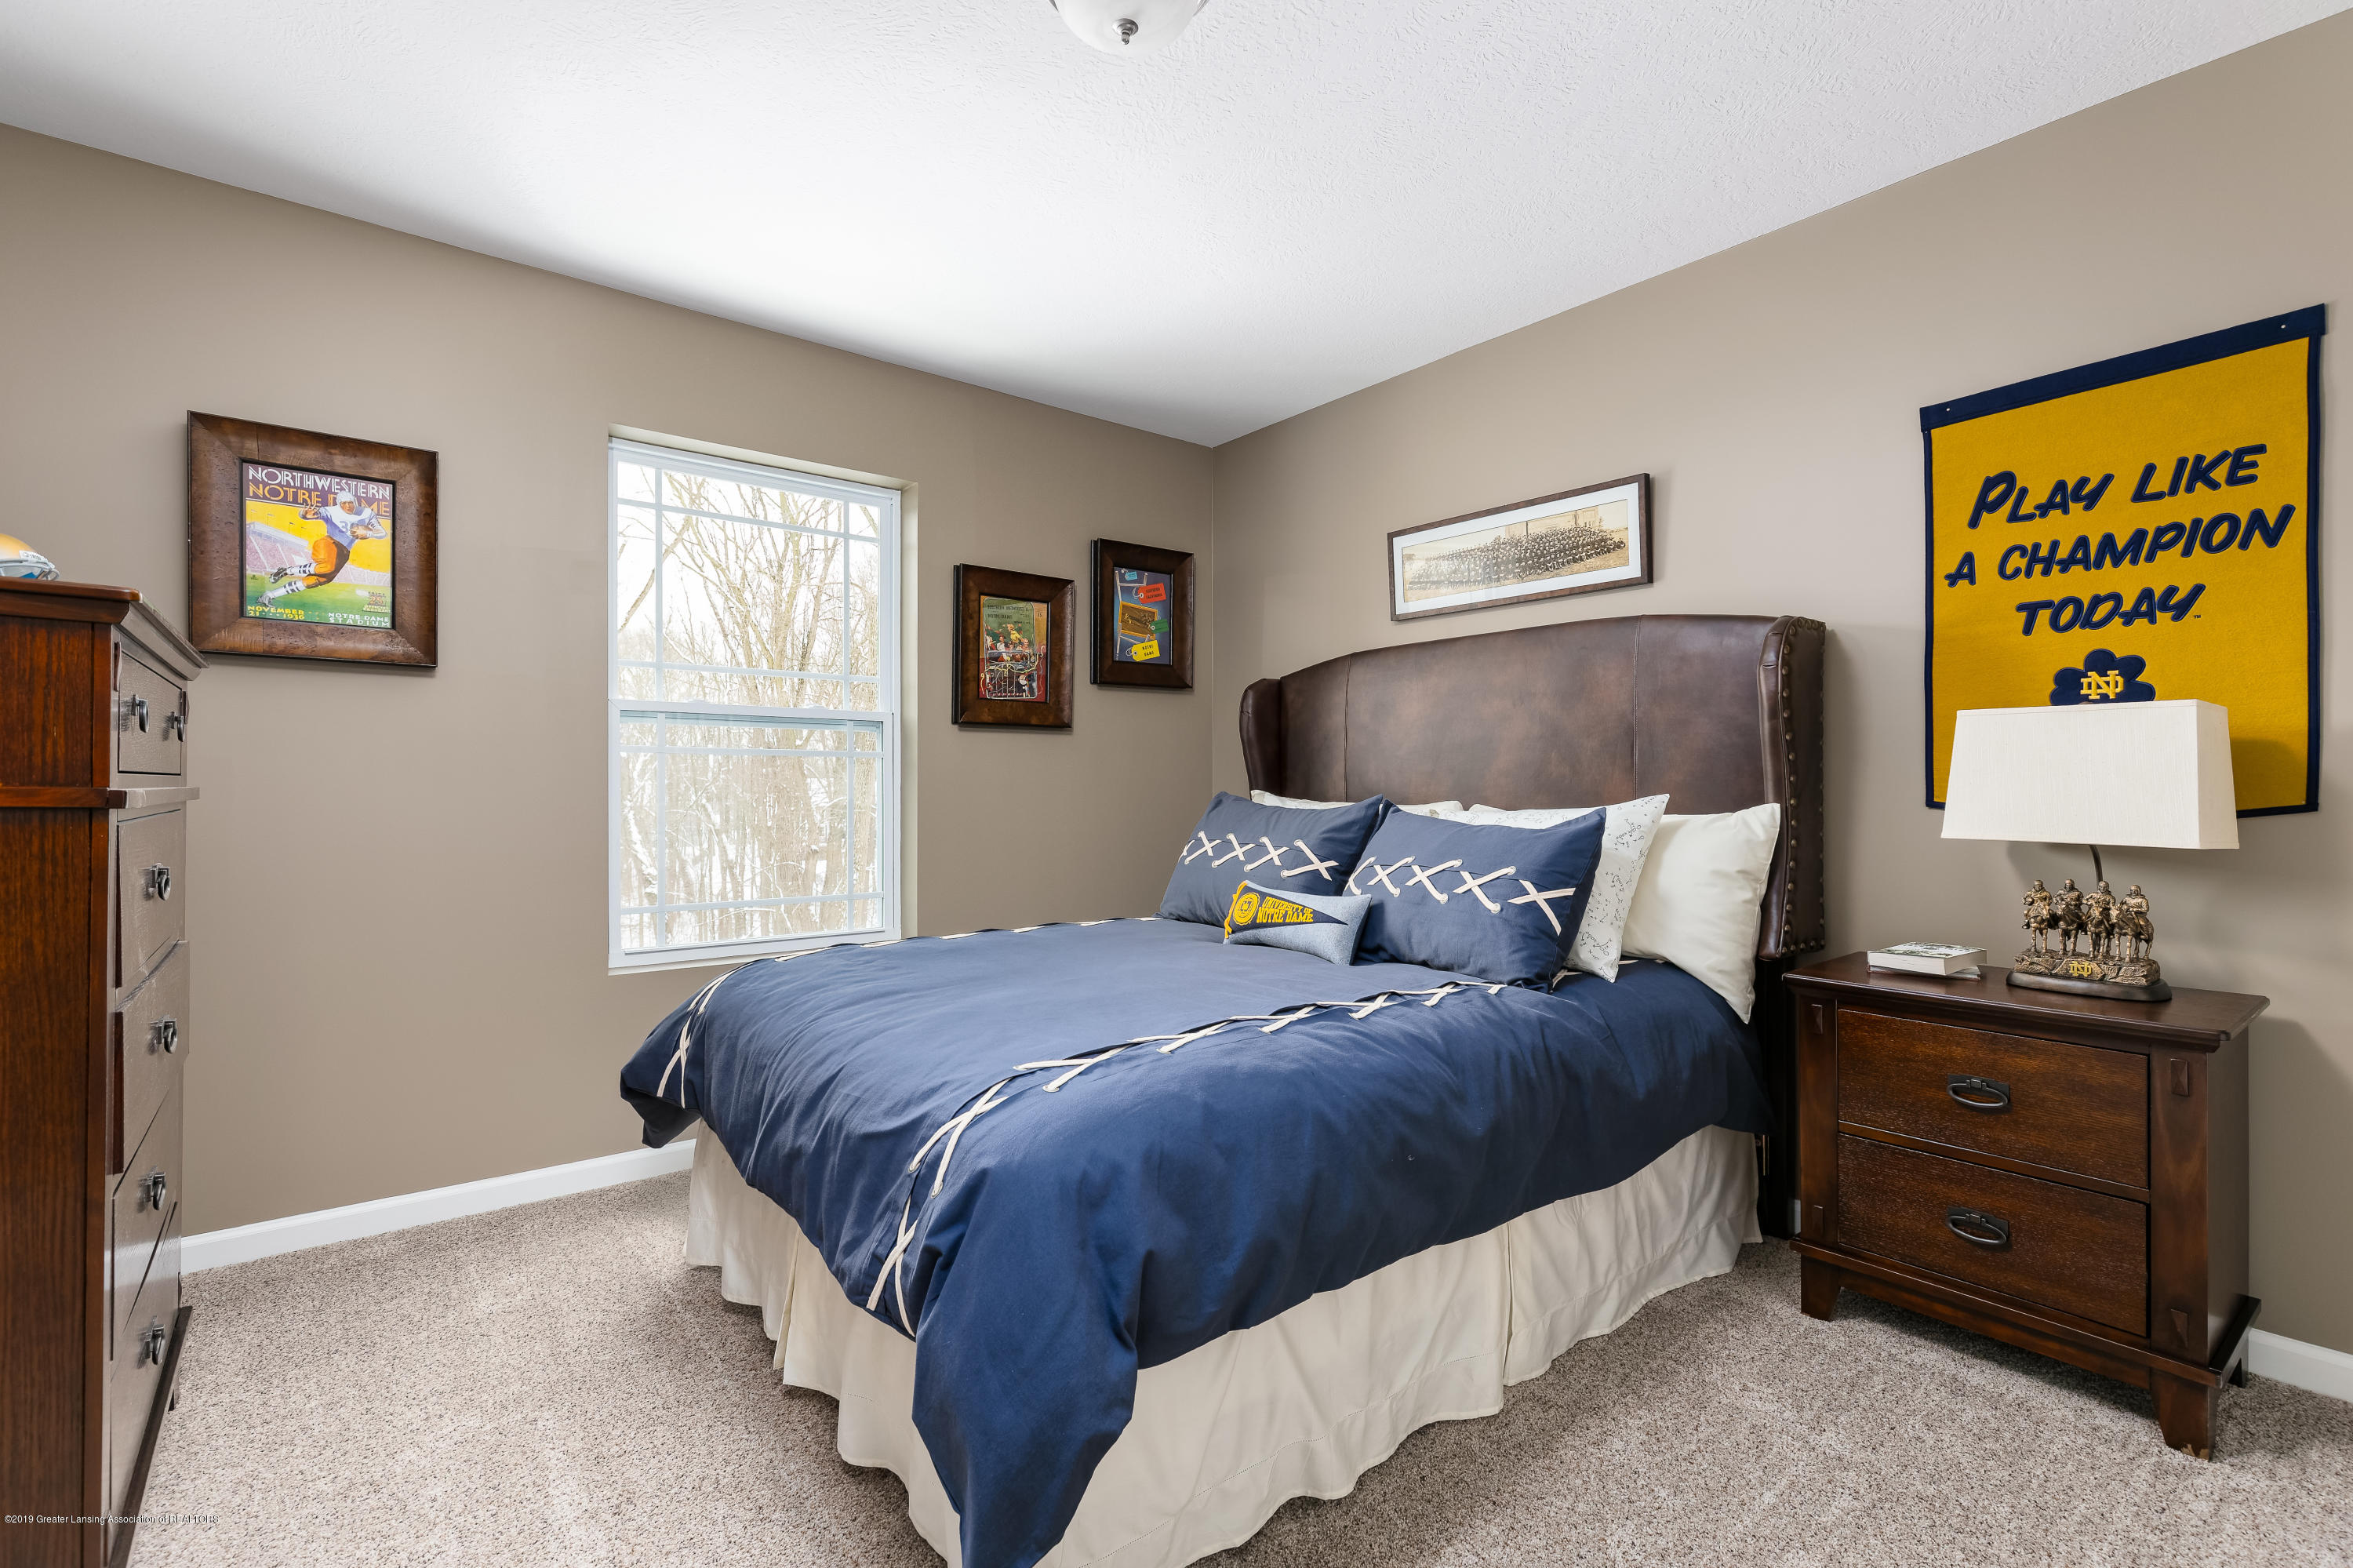 1916 Crossroads Dr - Bed WLC013-E2390-24 - 15